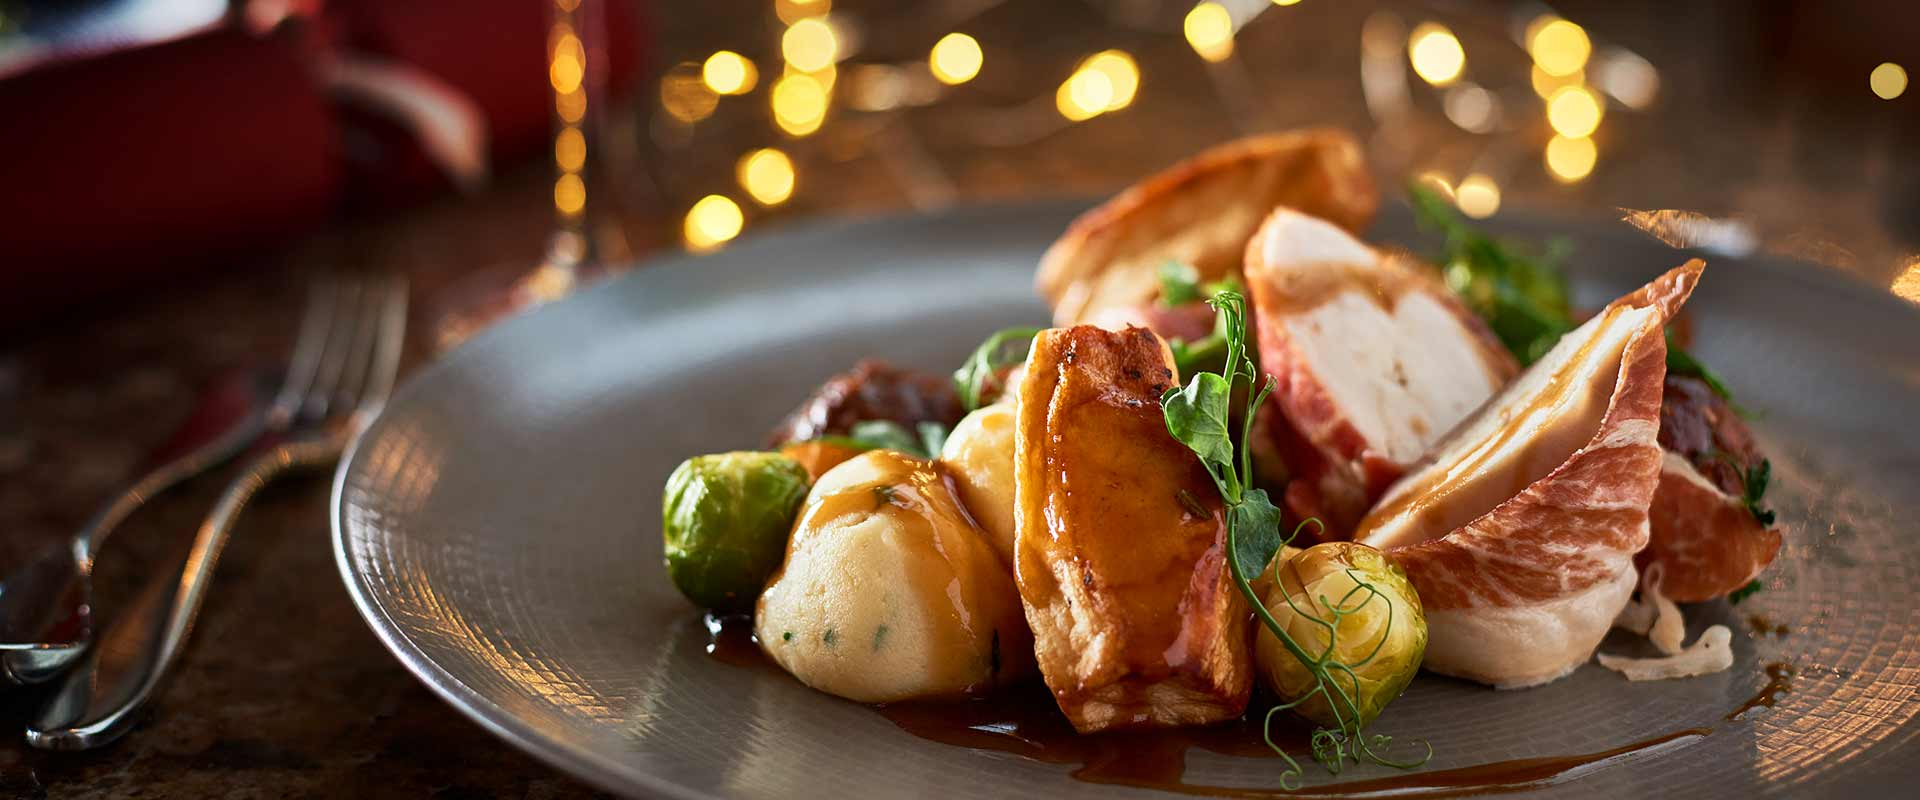 Christmas Turkey at the Grosvenor Pulford Hotel and Spa